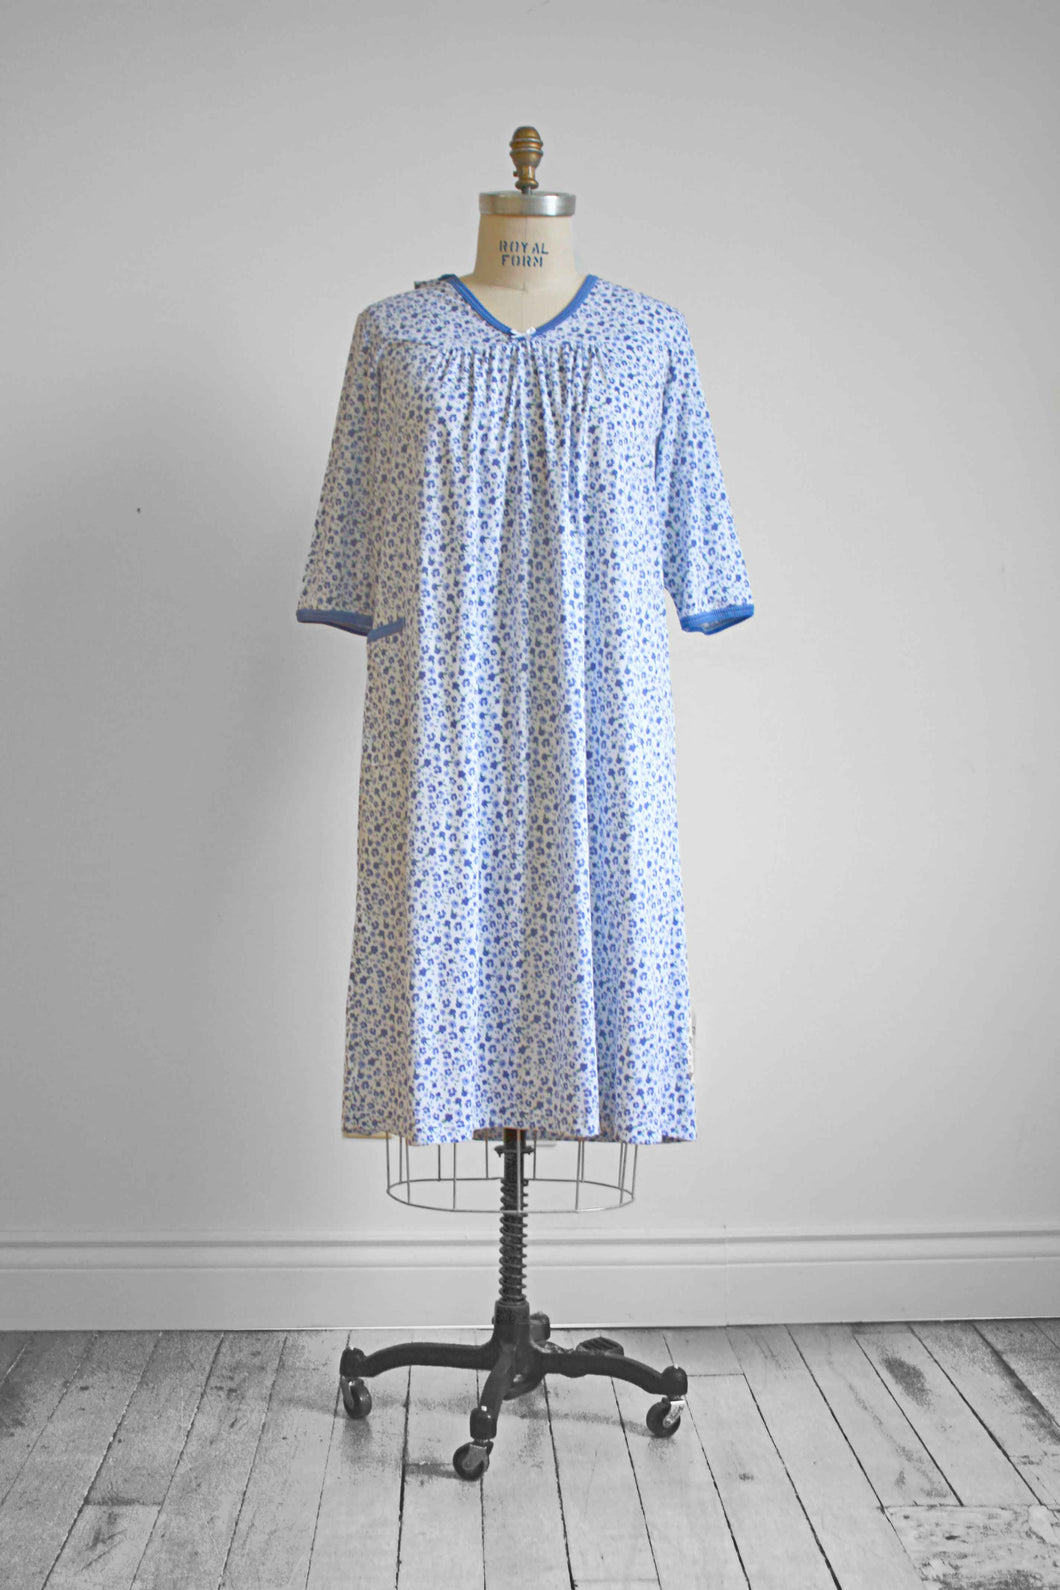 Adaptive ¾ sleeve nightgown